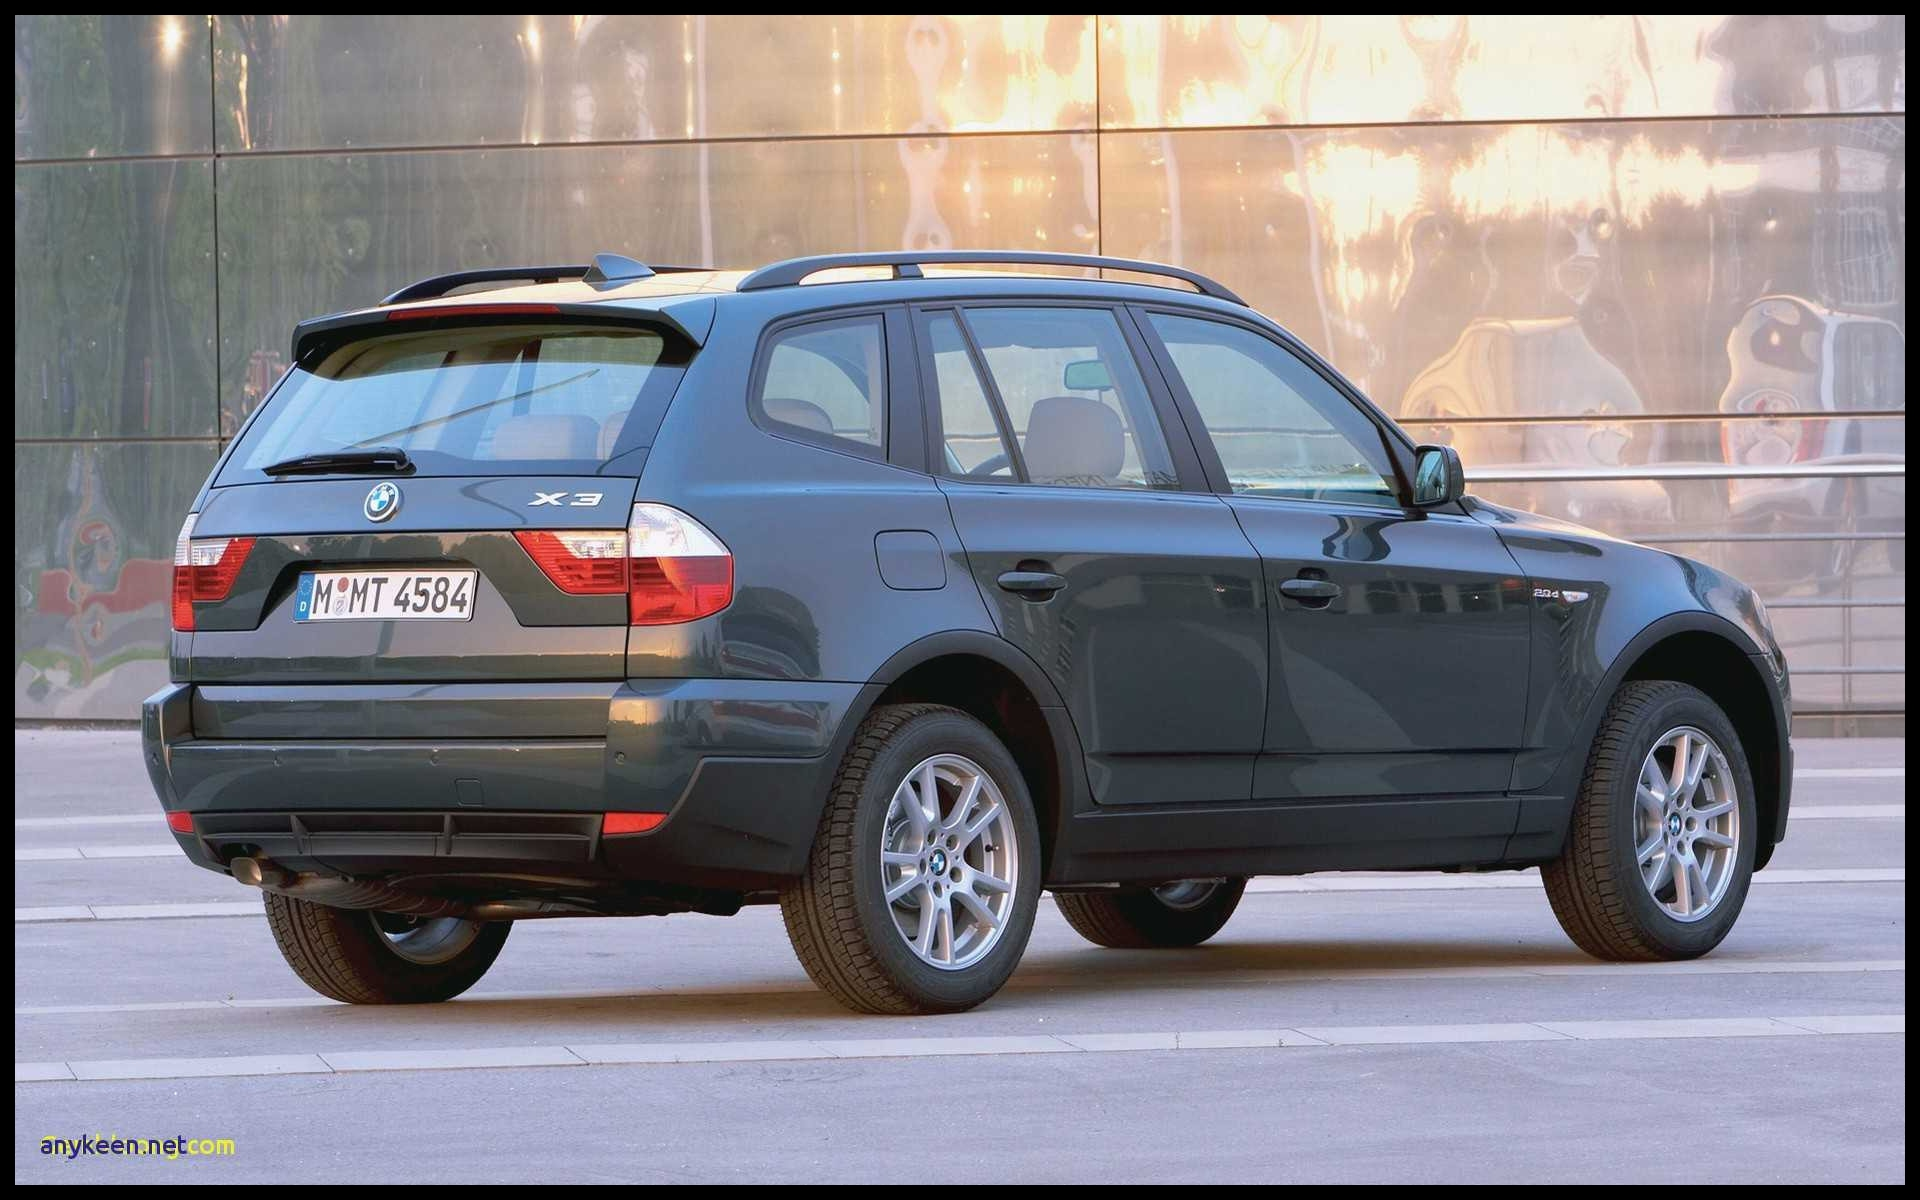 New Bmw Models 2018 Amazing Wallpapers New New Best Bmw X3 Pc Wallpaper Bmw X Series Wallpapers